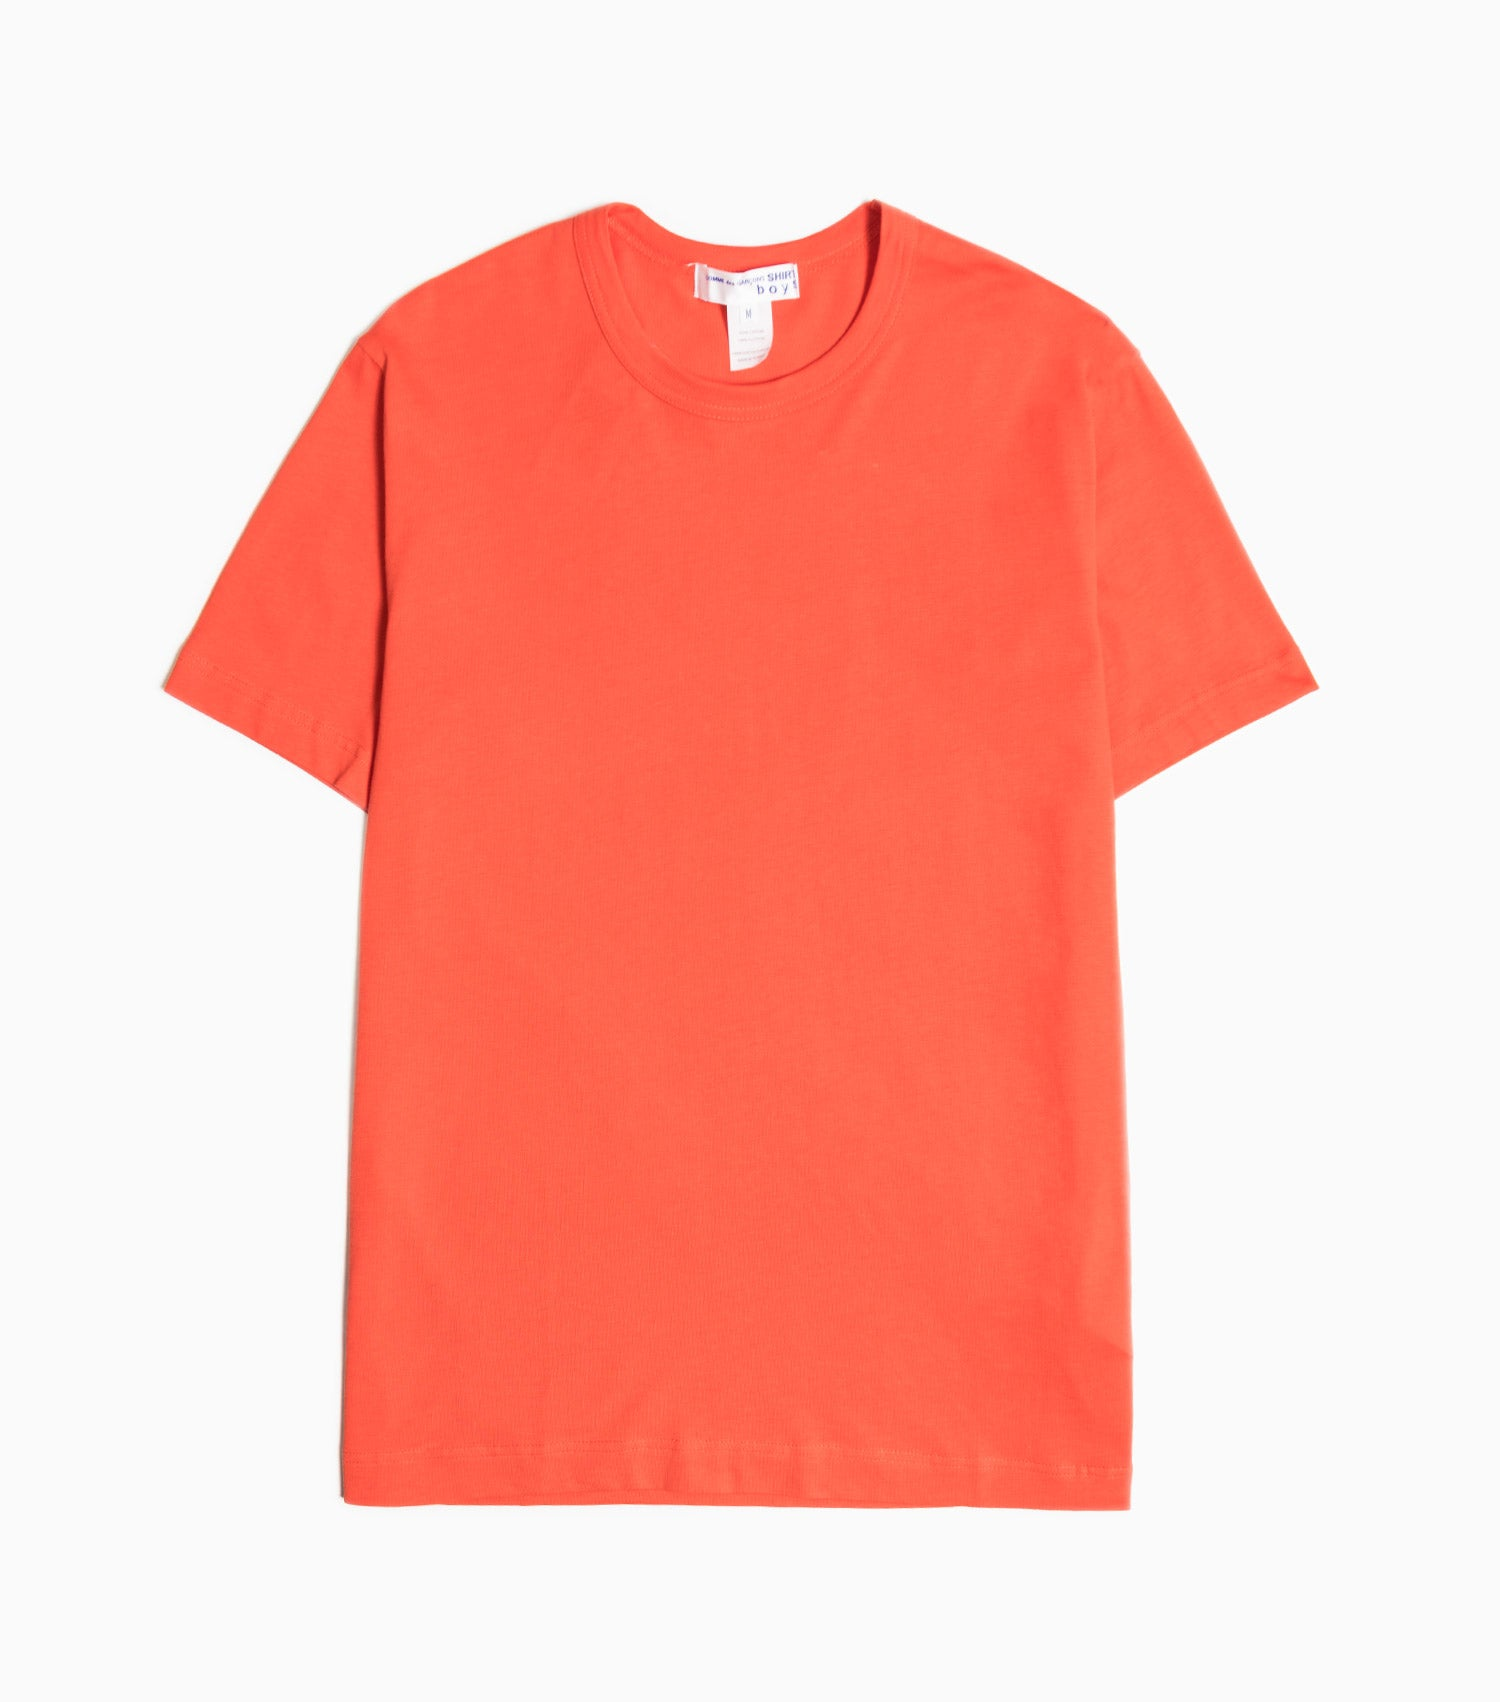 Comme des Garçons Shirt Boys Back Logo Jersey T-Shirt - Red T-Shirt - CARTOCON